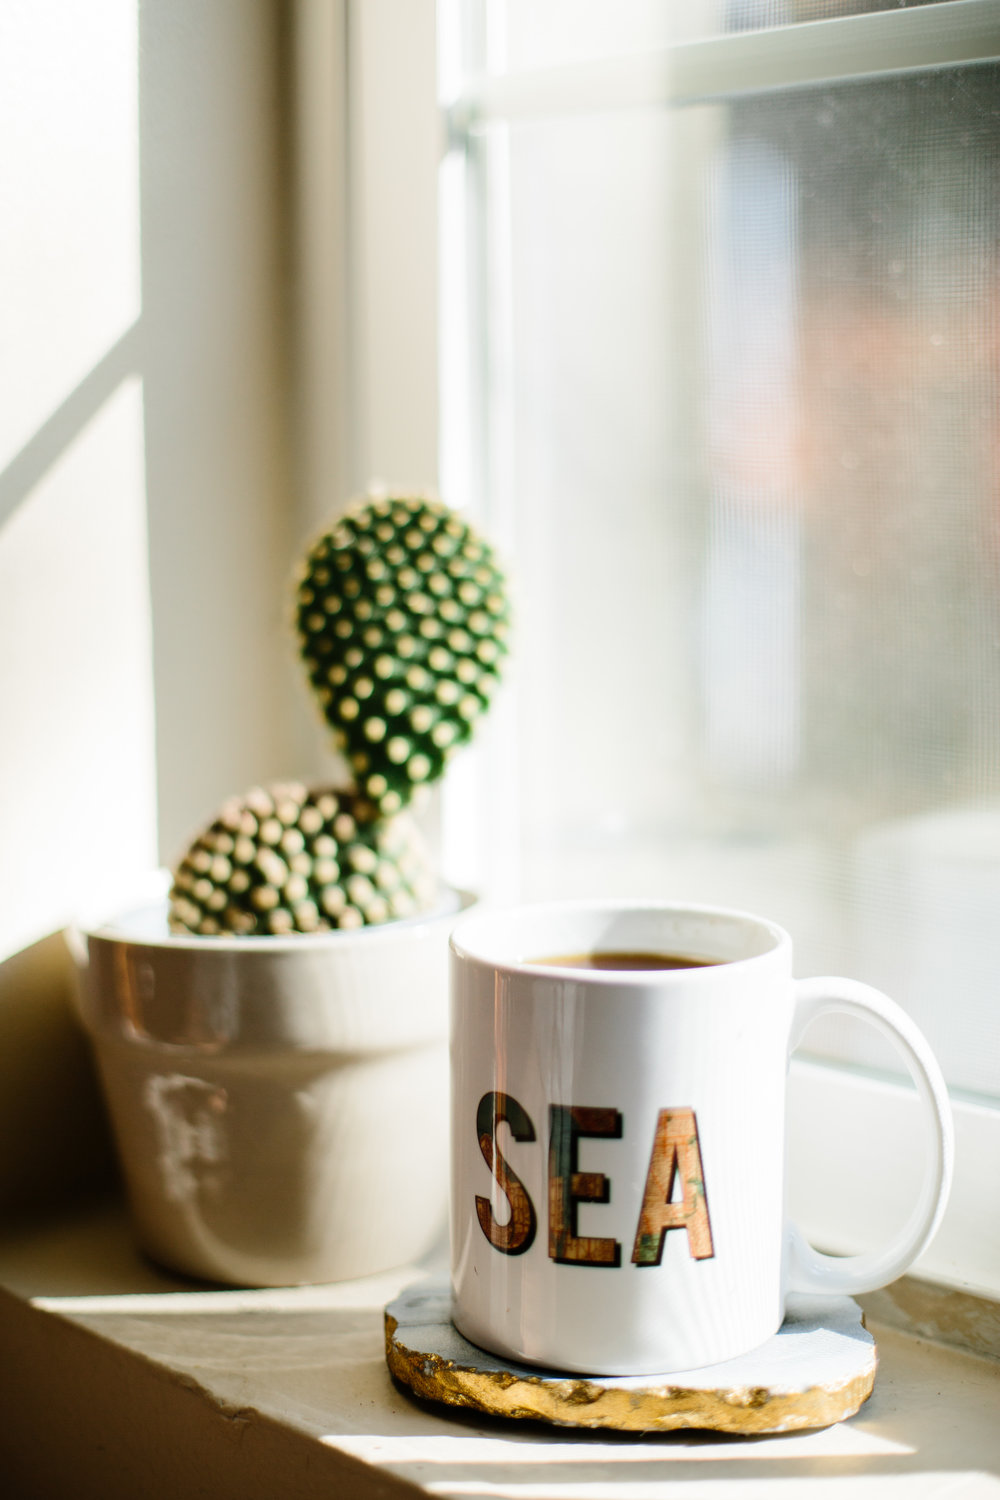 Nautical mug by PaperFinch Design. Photo by Janelle Elaine.